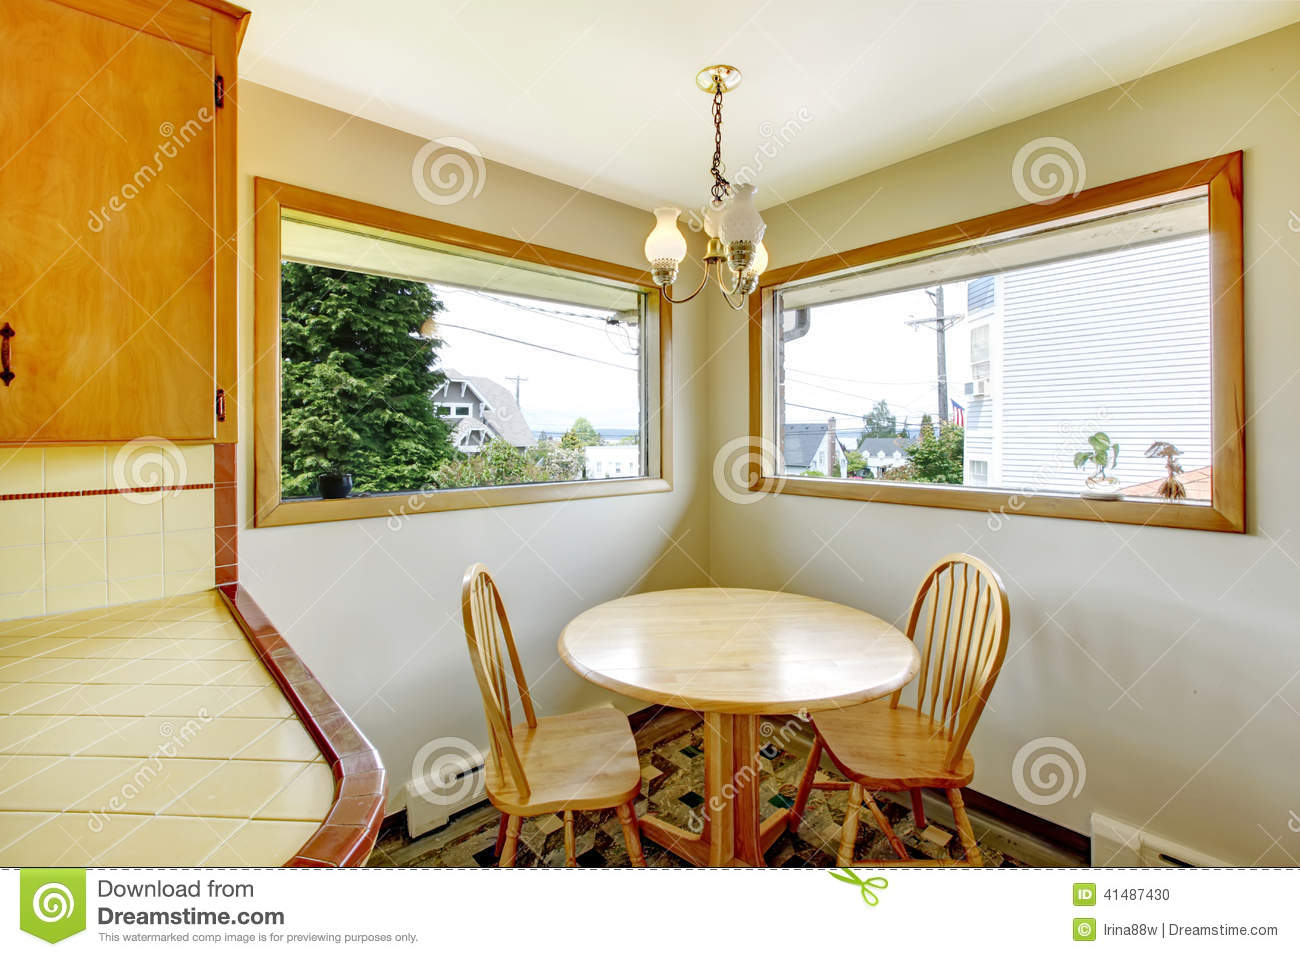 Picture of: Dining Room With Rustic Table Set Stock Photo Image Of Property Building 41487430